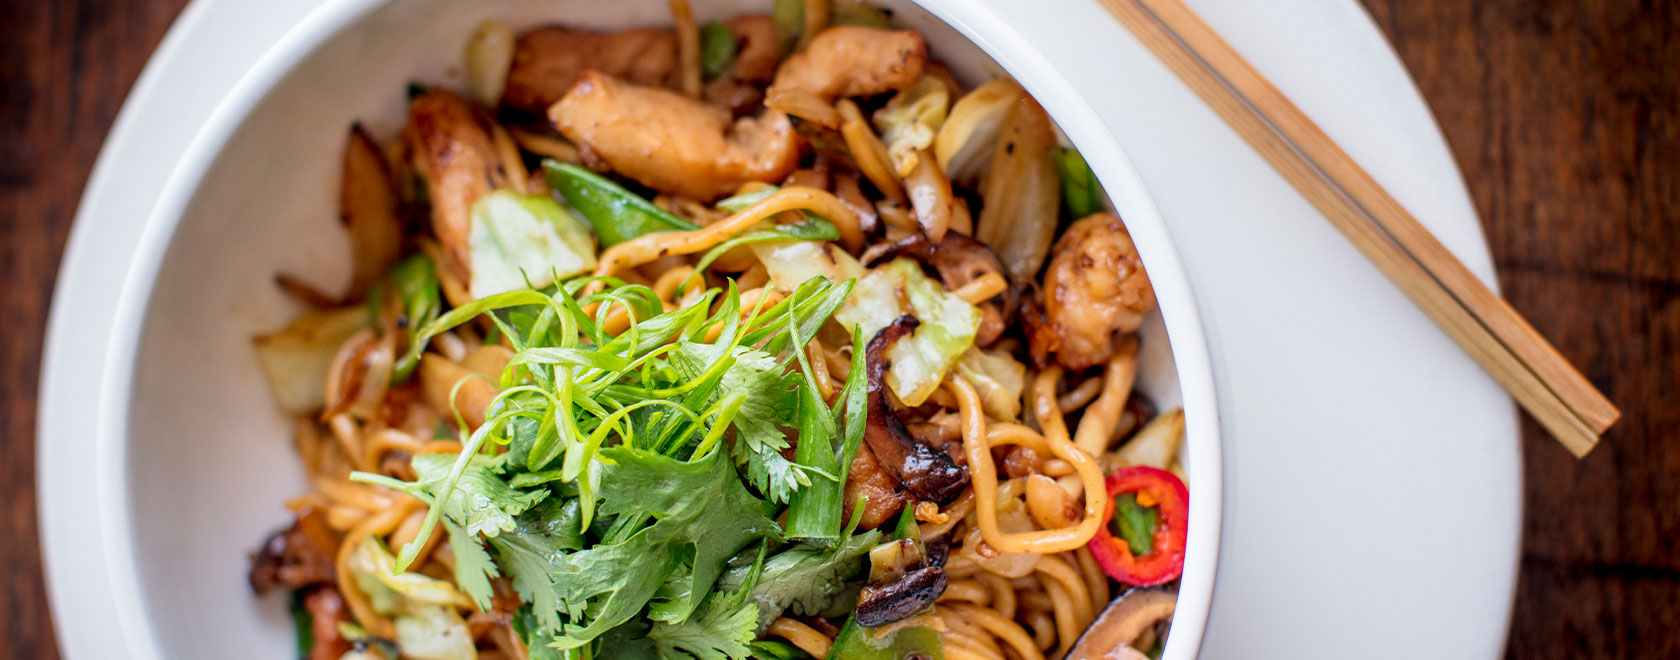 lo mein dish with meat and vegetable garnish on top, chopsticks are beside the bowl